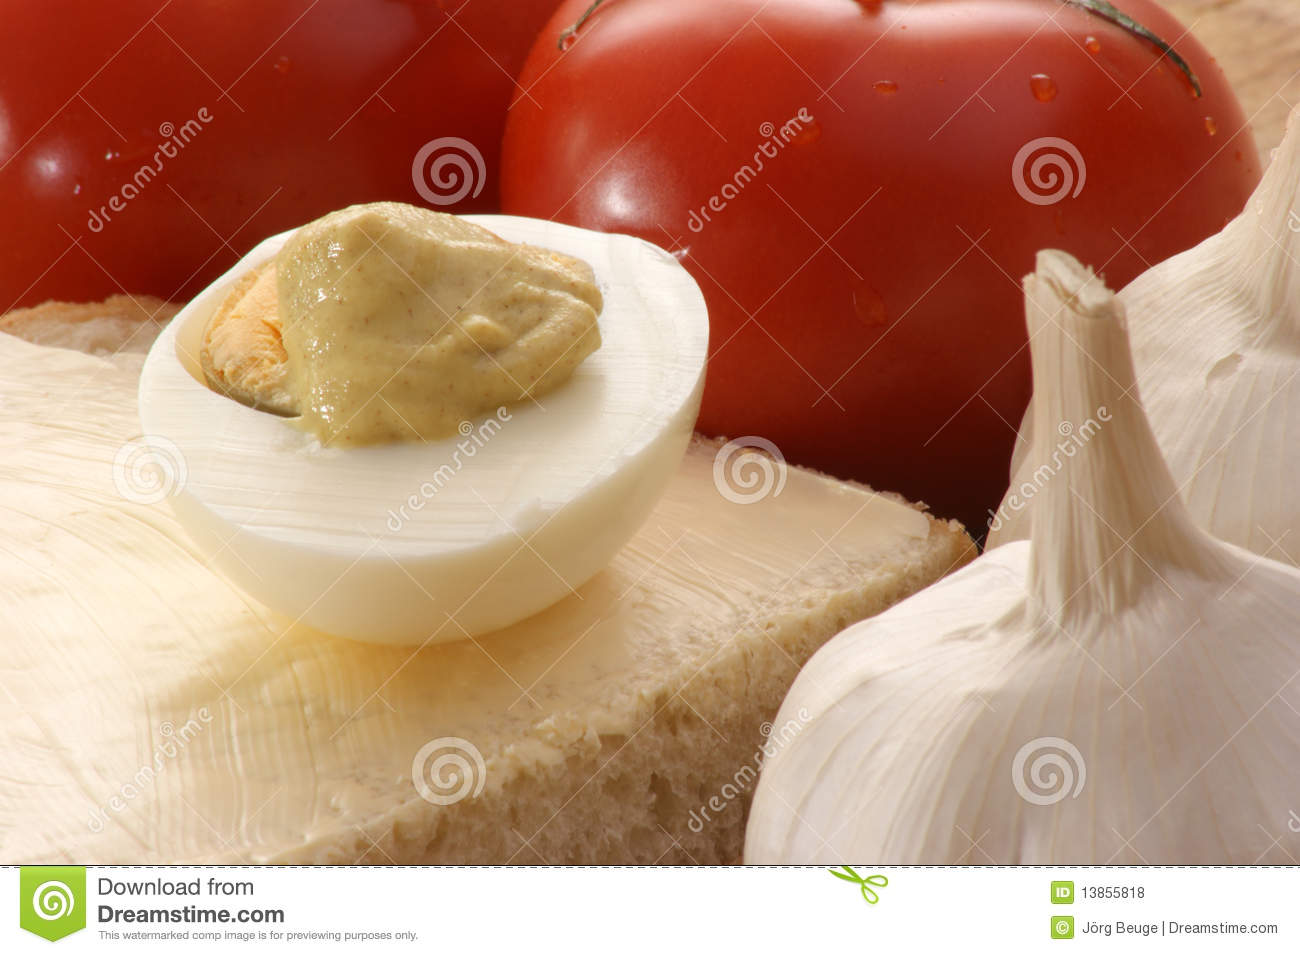 spicy-egg-salad-timber-board-13855818.jpg